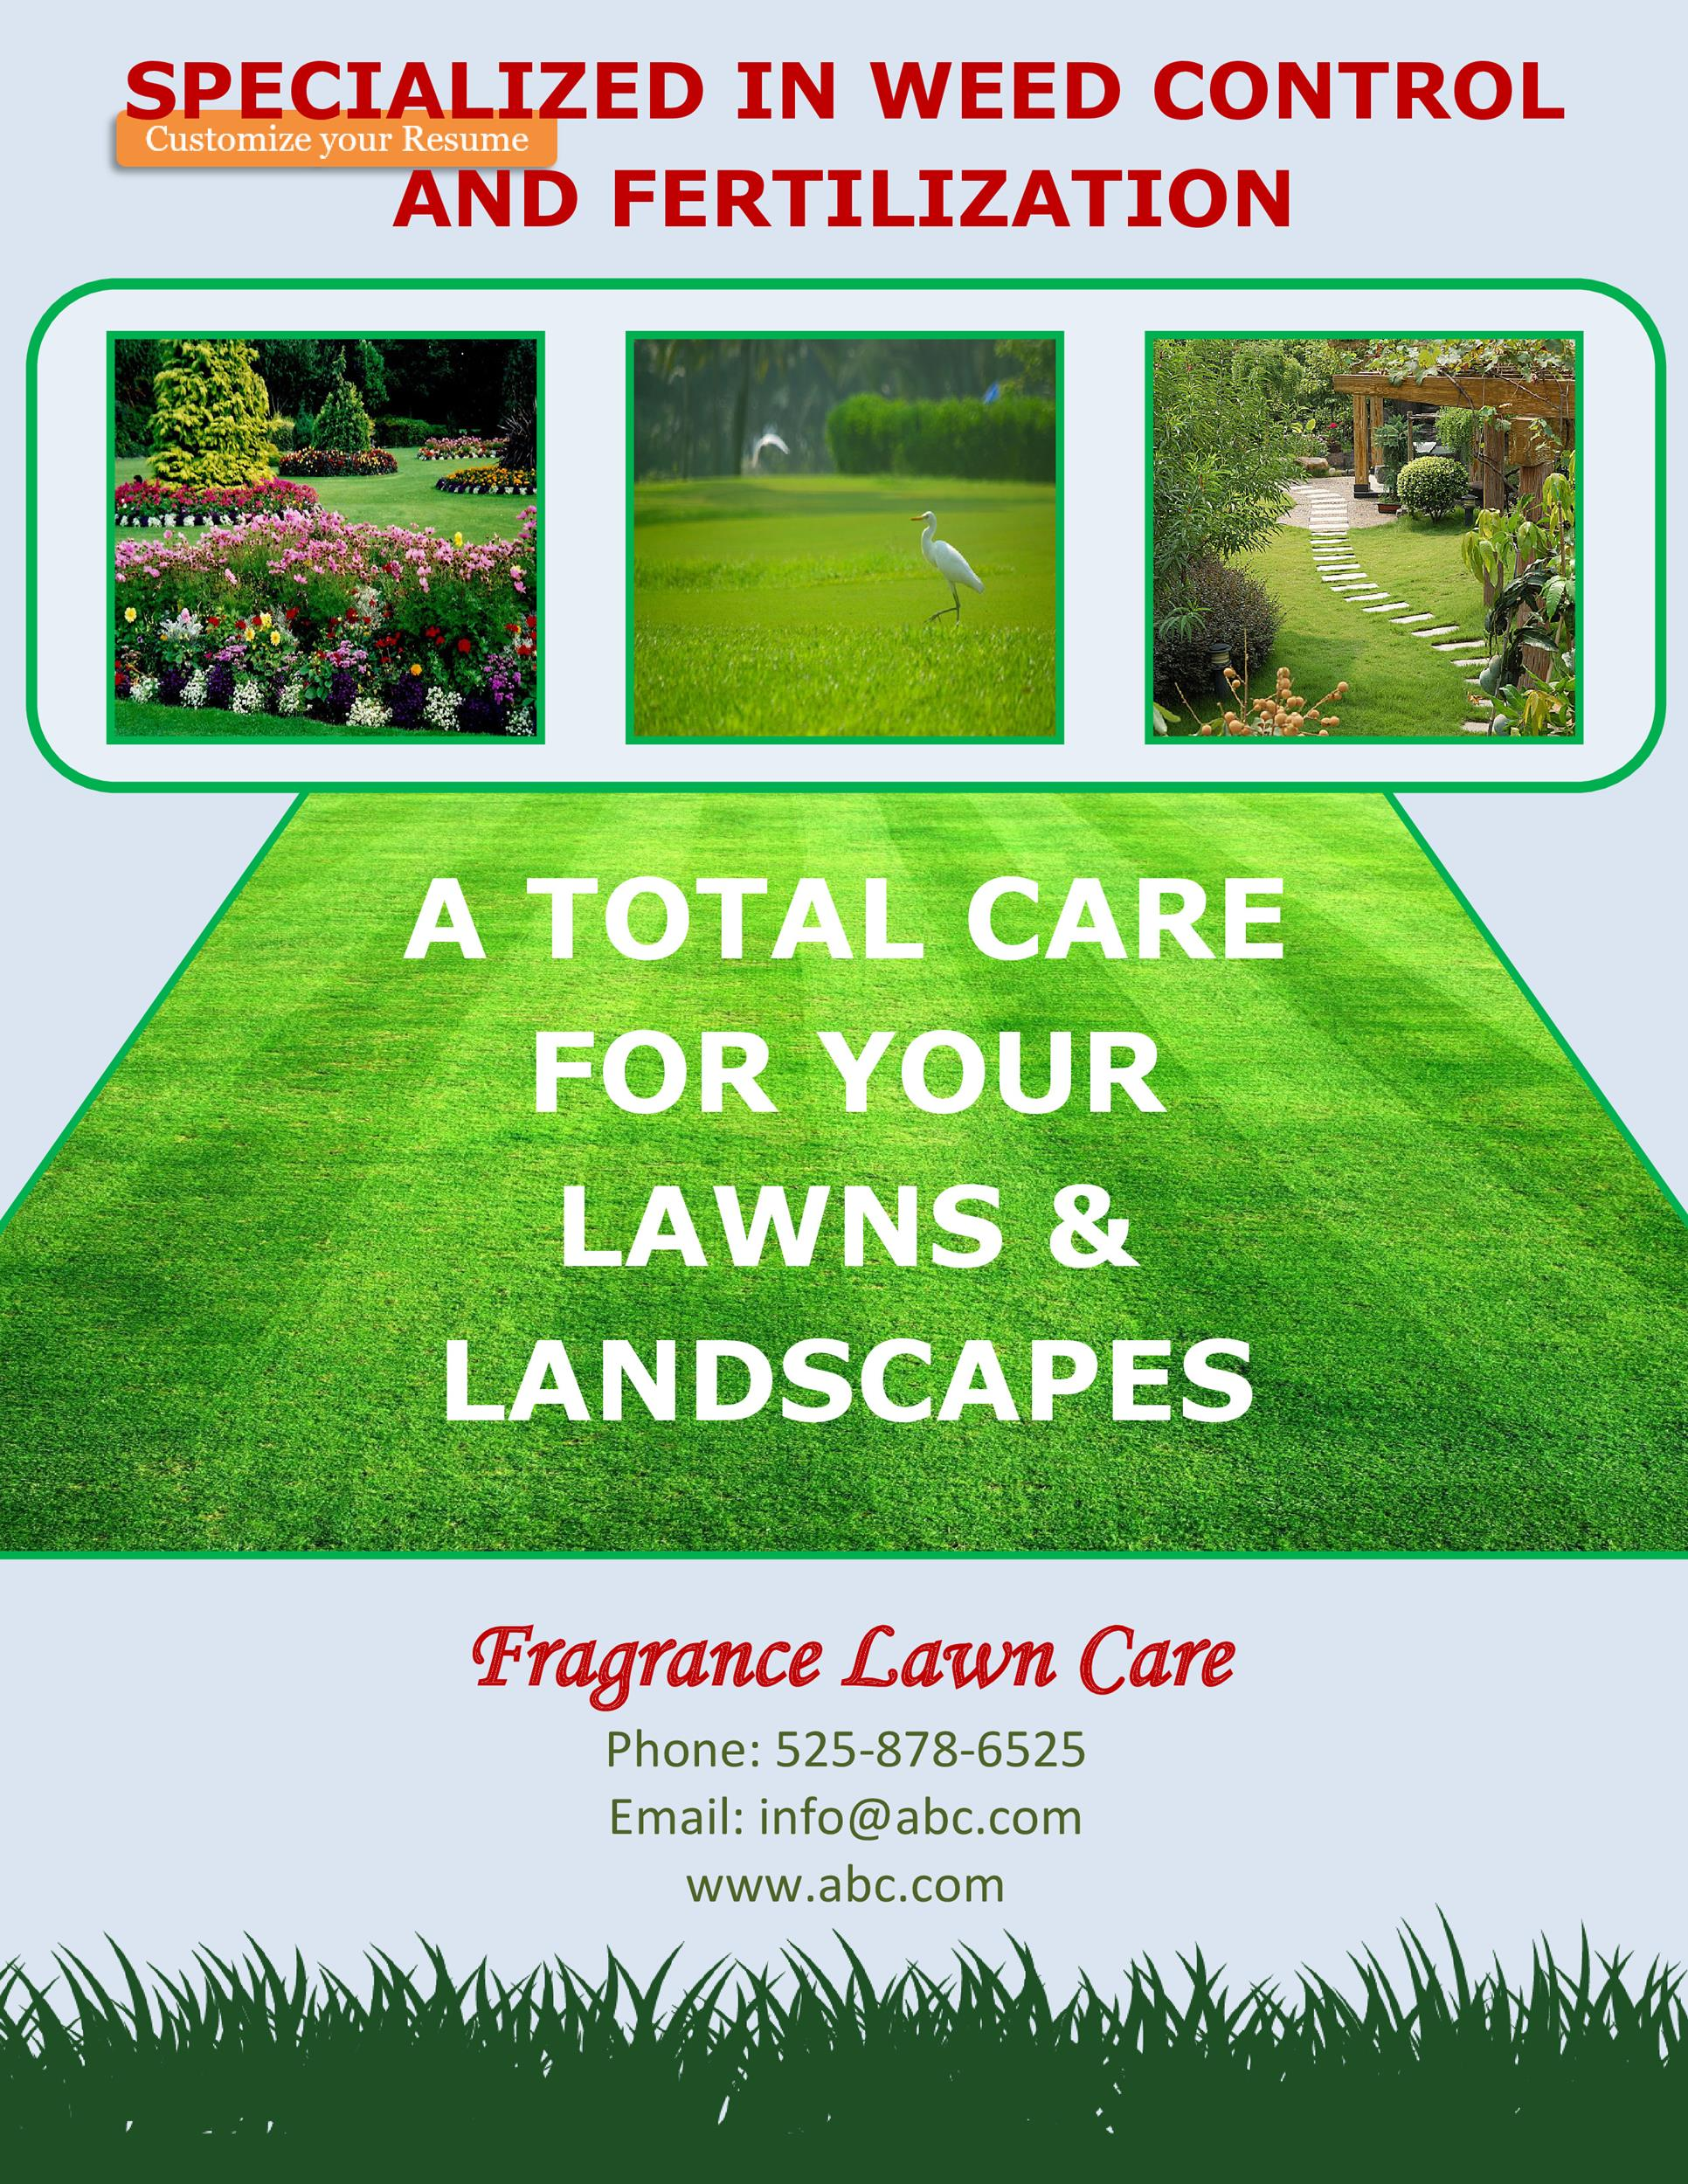 Free lawn care flyer 11